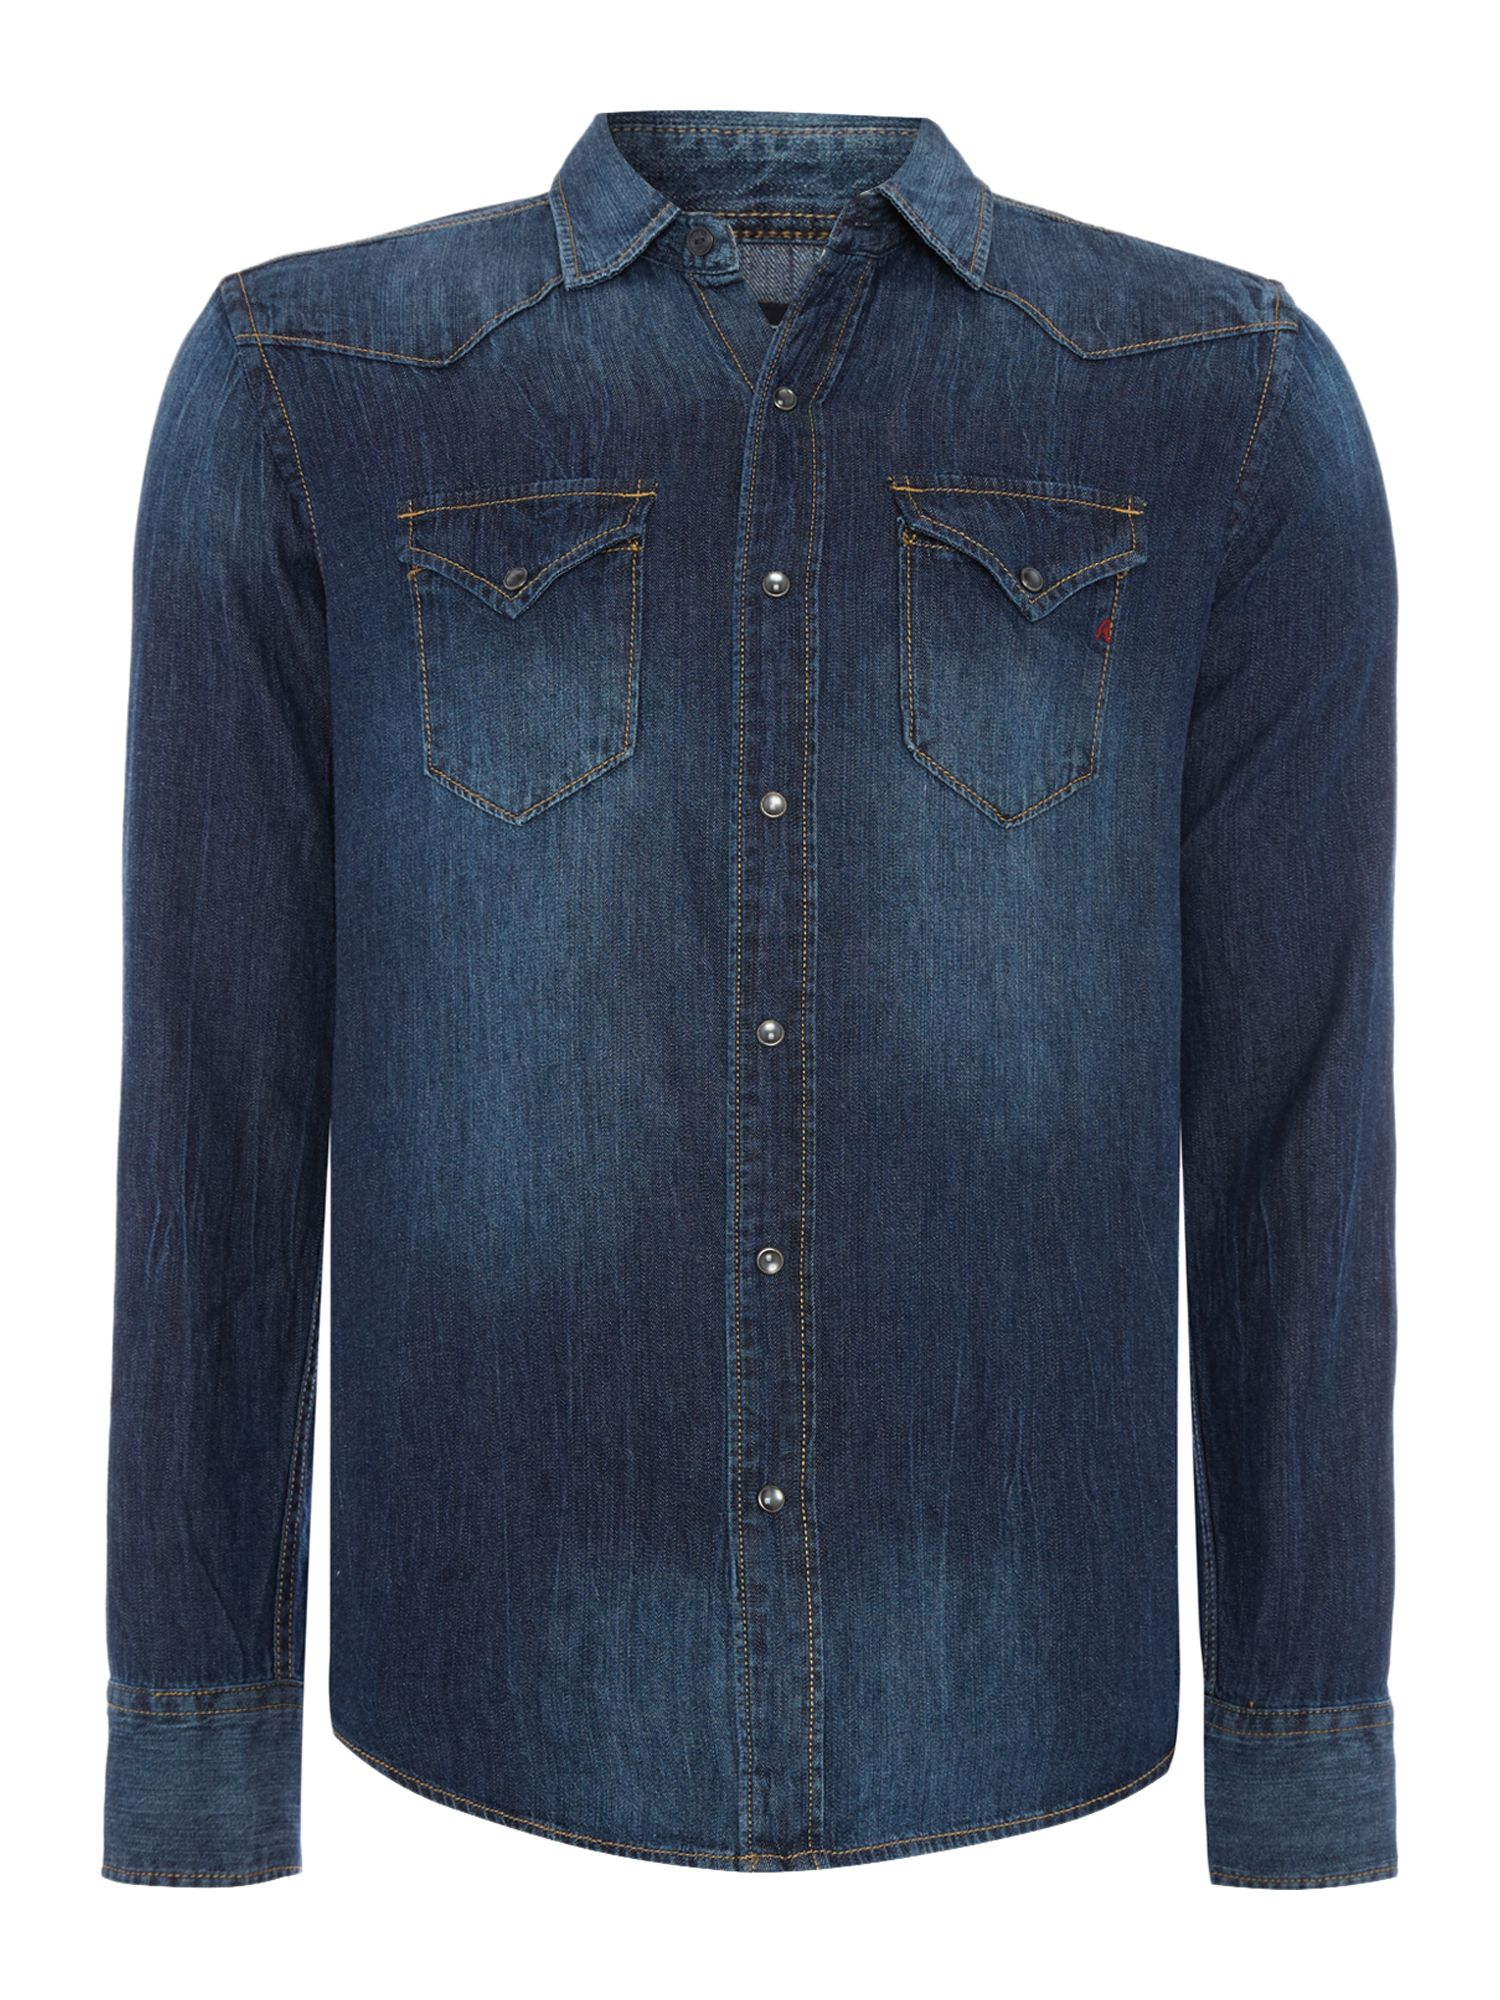 Replay denim shirt in blue for men lyst for Replay blue jeans t shirt